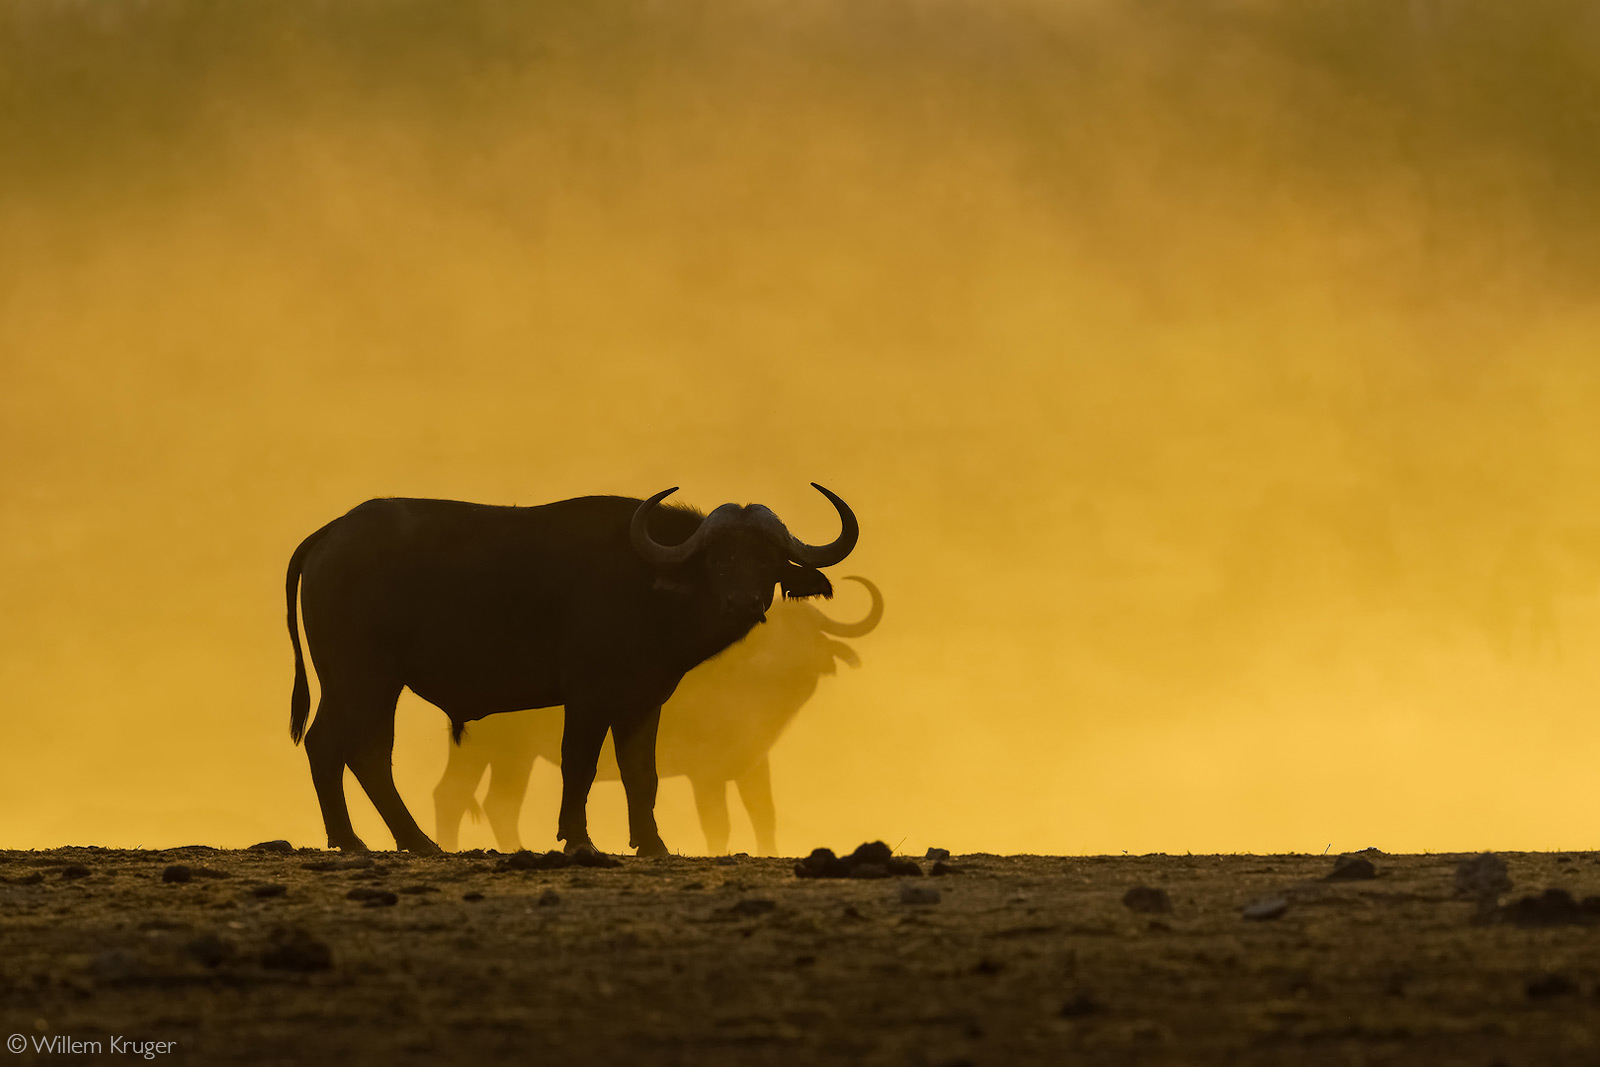 Buffaloes in the dust at sunset. Kruger National Park, South Africa © Willem Kruger